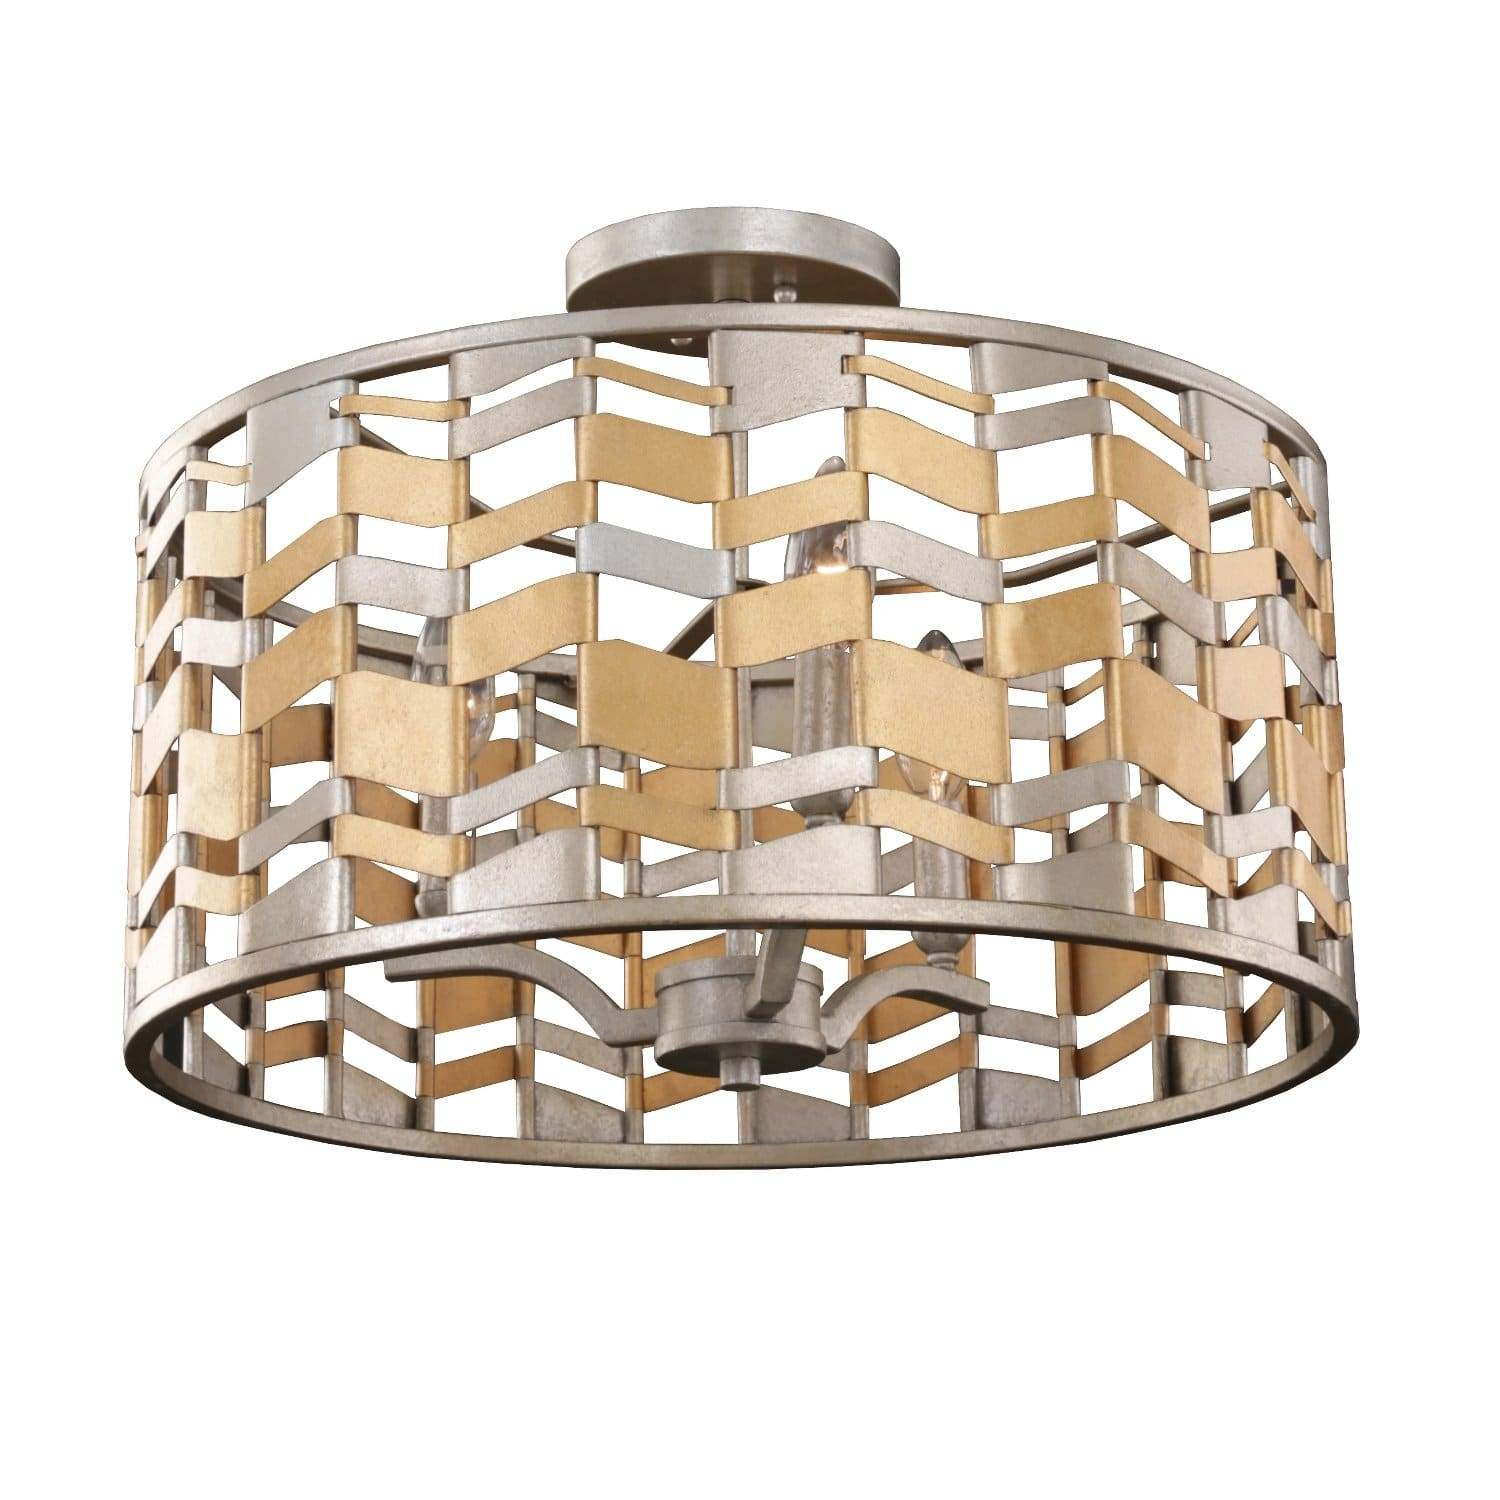 Kalco Lighting Pendants Jewel Metallic Broadway 19 Inch Convertible Pendant - Semi Flush Mount By Kalco Lighting 503940